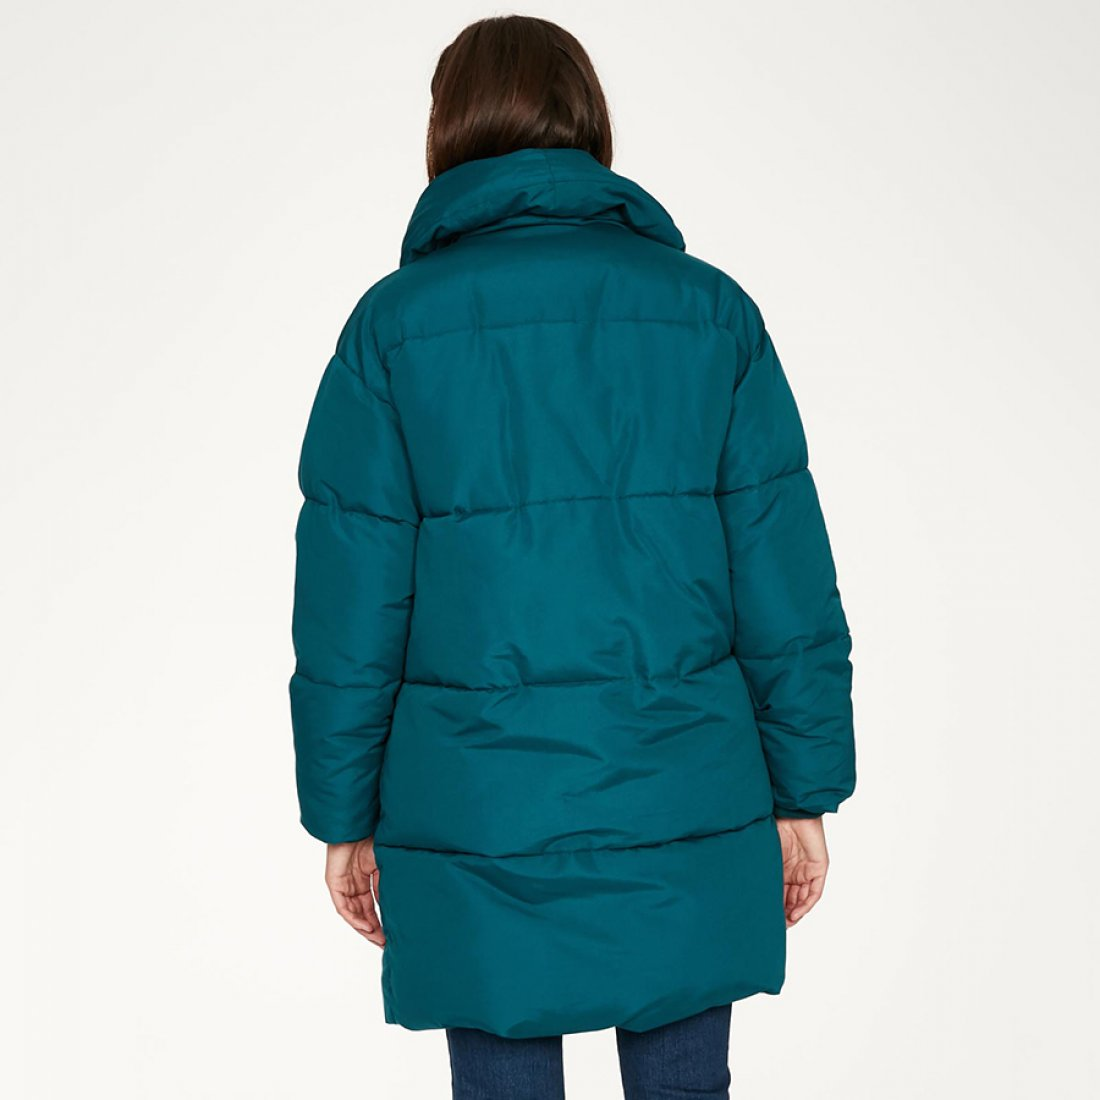 479066-Thought-KINGFISHER-GREEN-Phebe-Puffa-Jacket-Recycled-Polyester-2